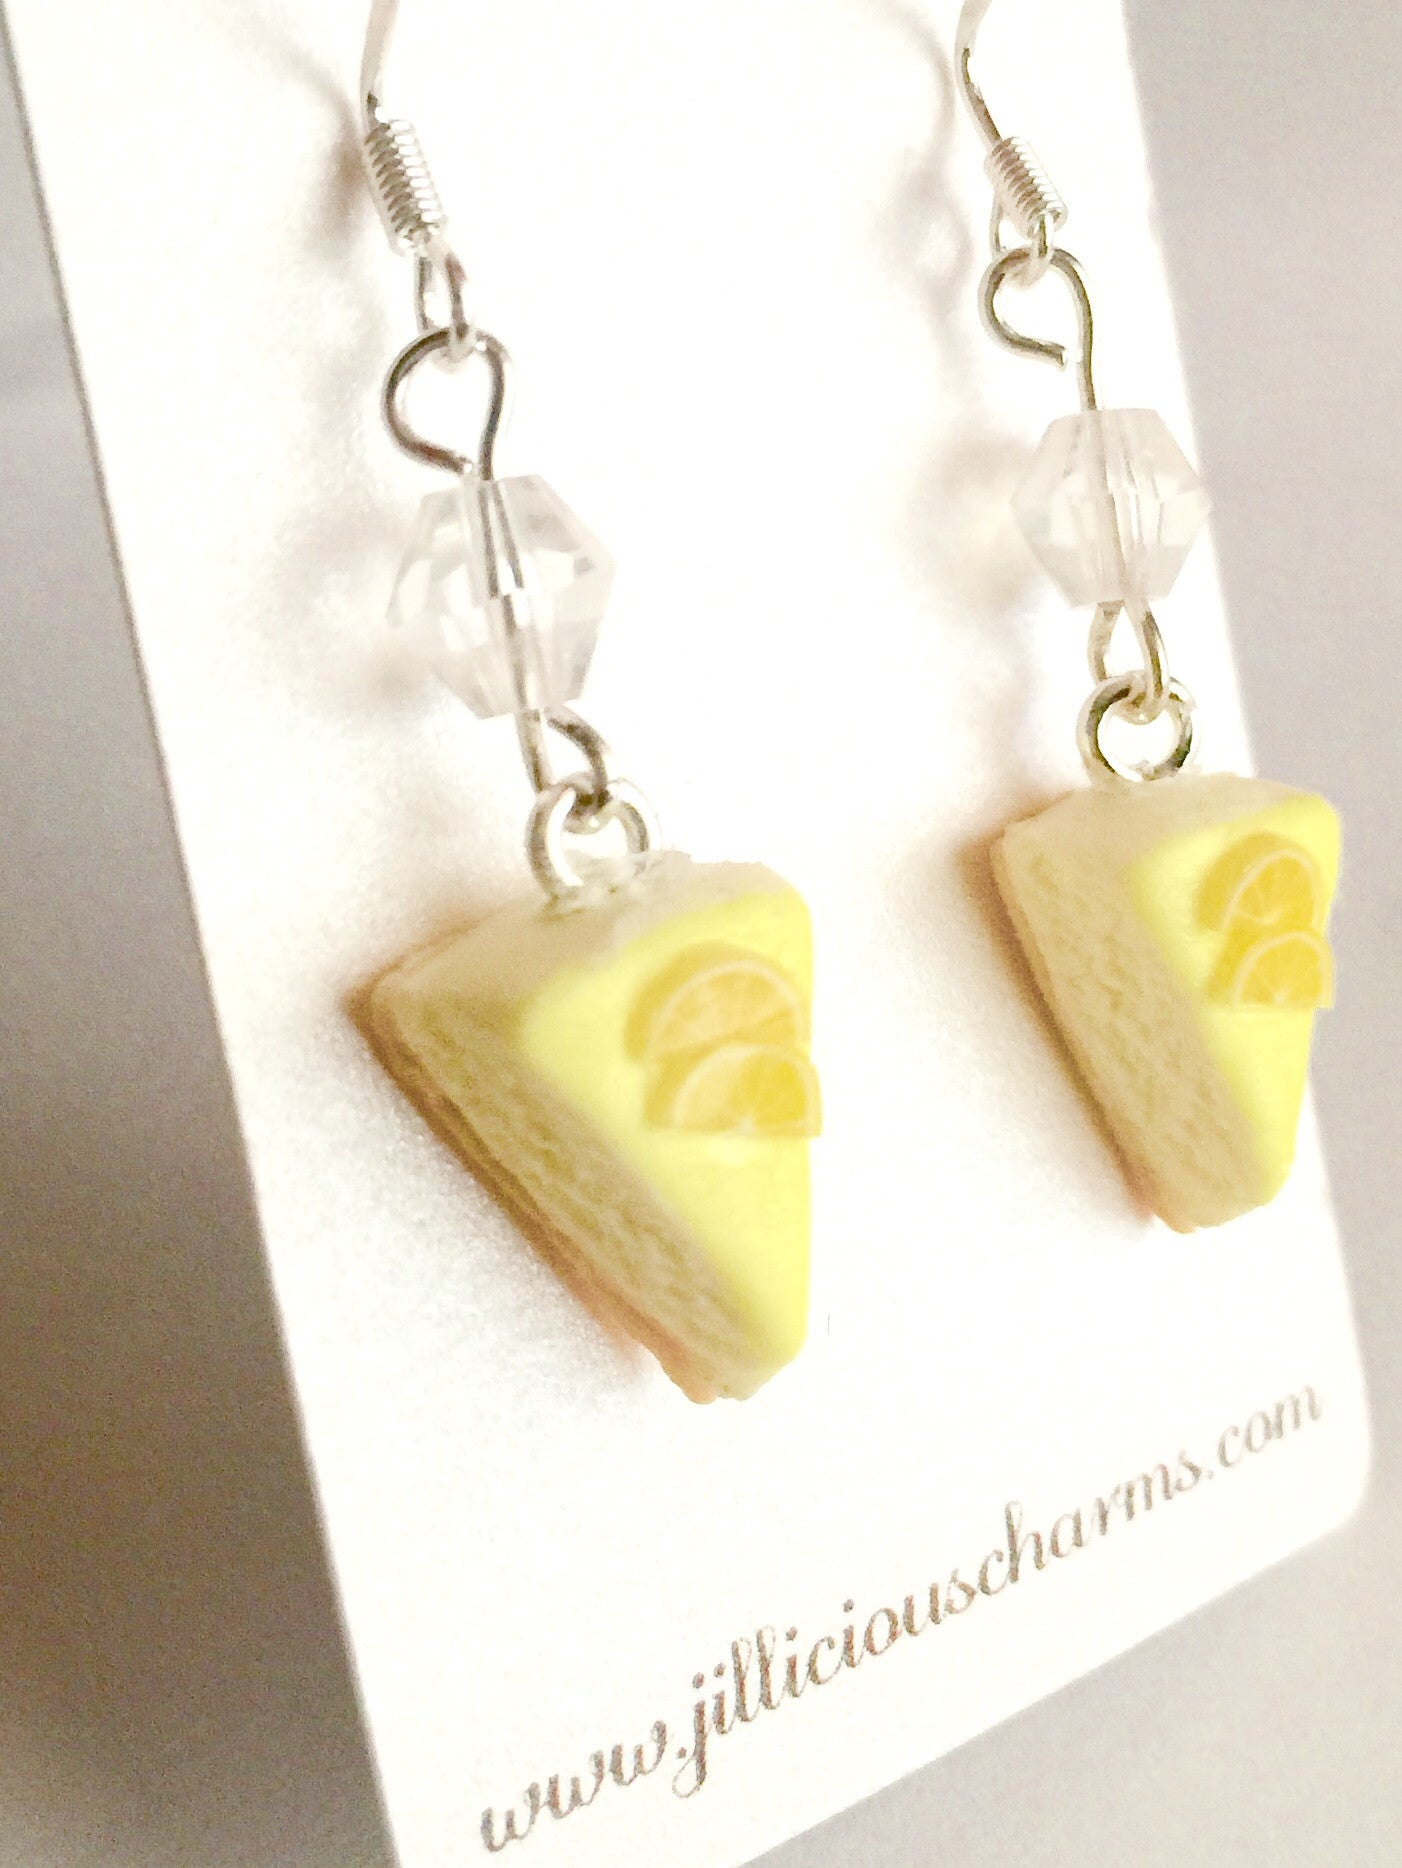 Lemon Cheesecake Dangle Earrings - Jillicious charms and accessories - 3